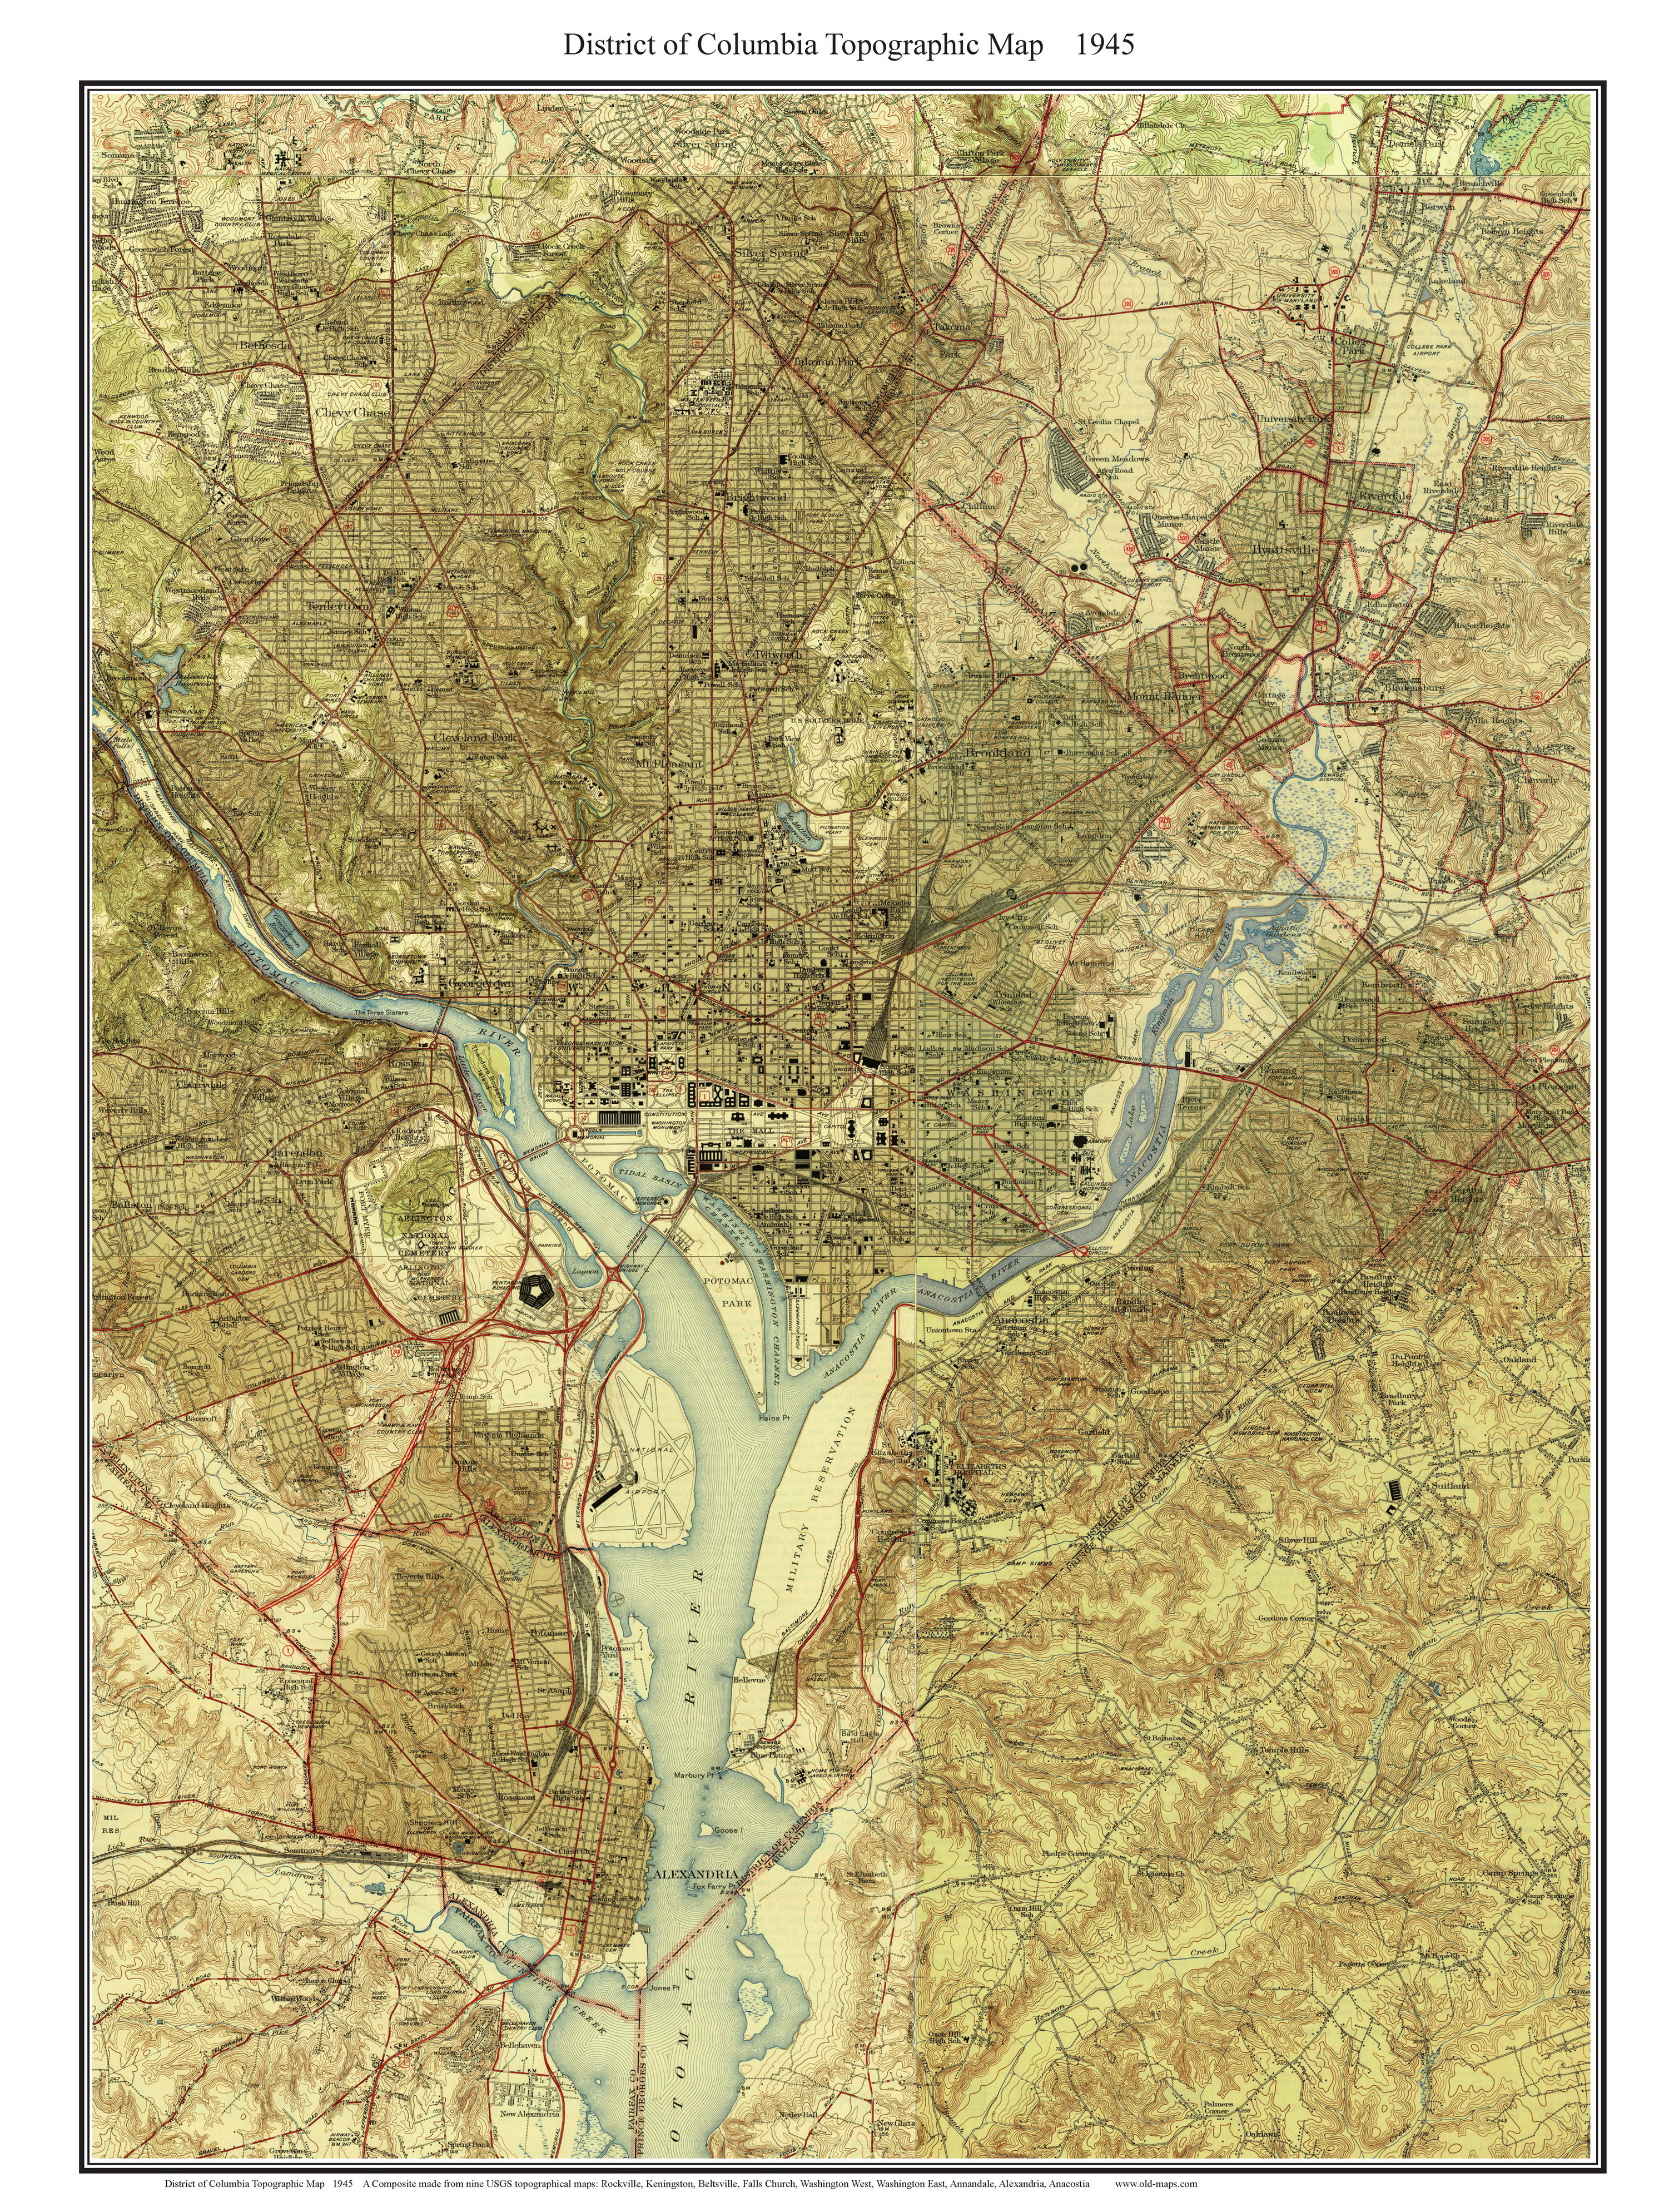 Old Topo Maps of Washington D.C.